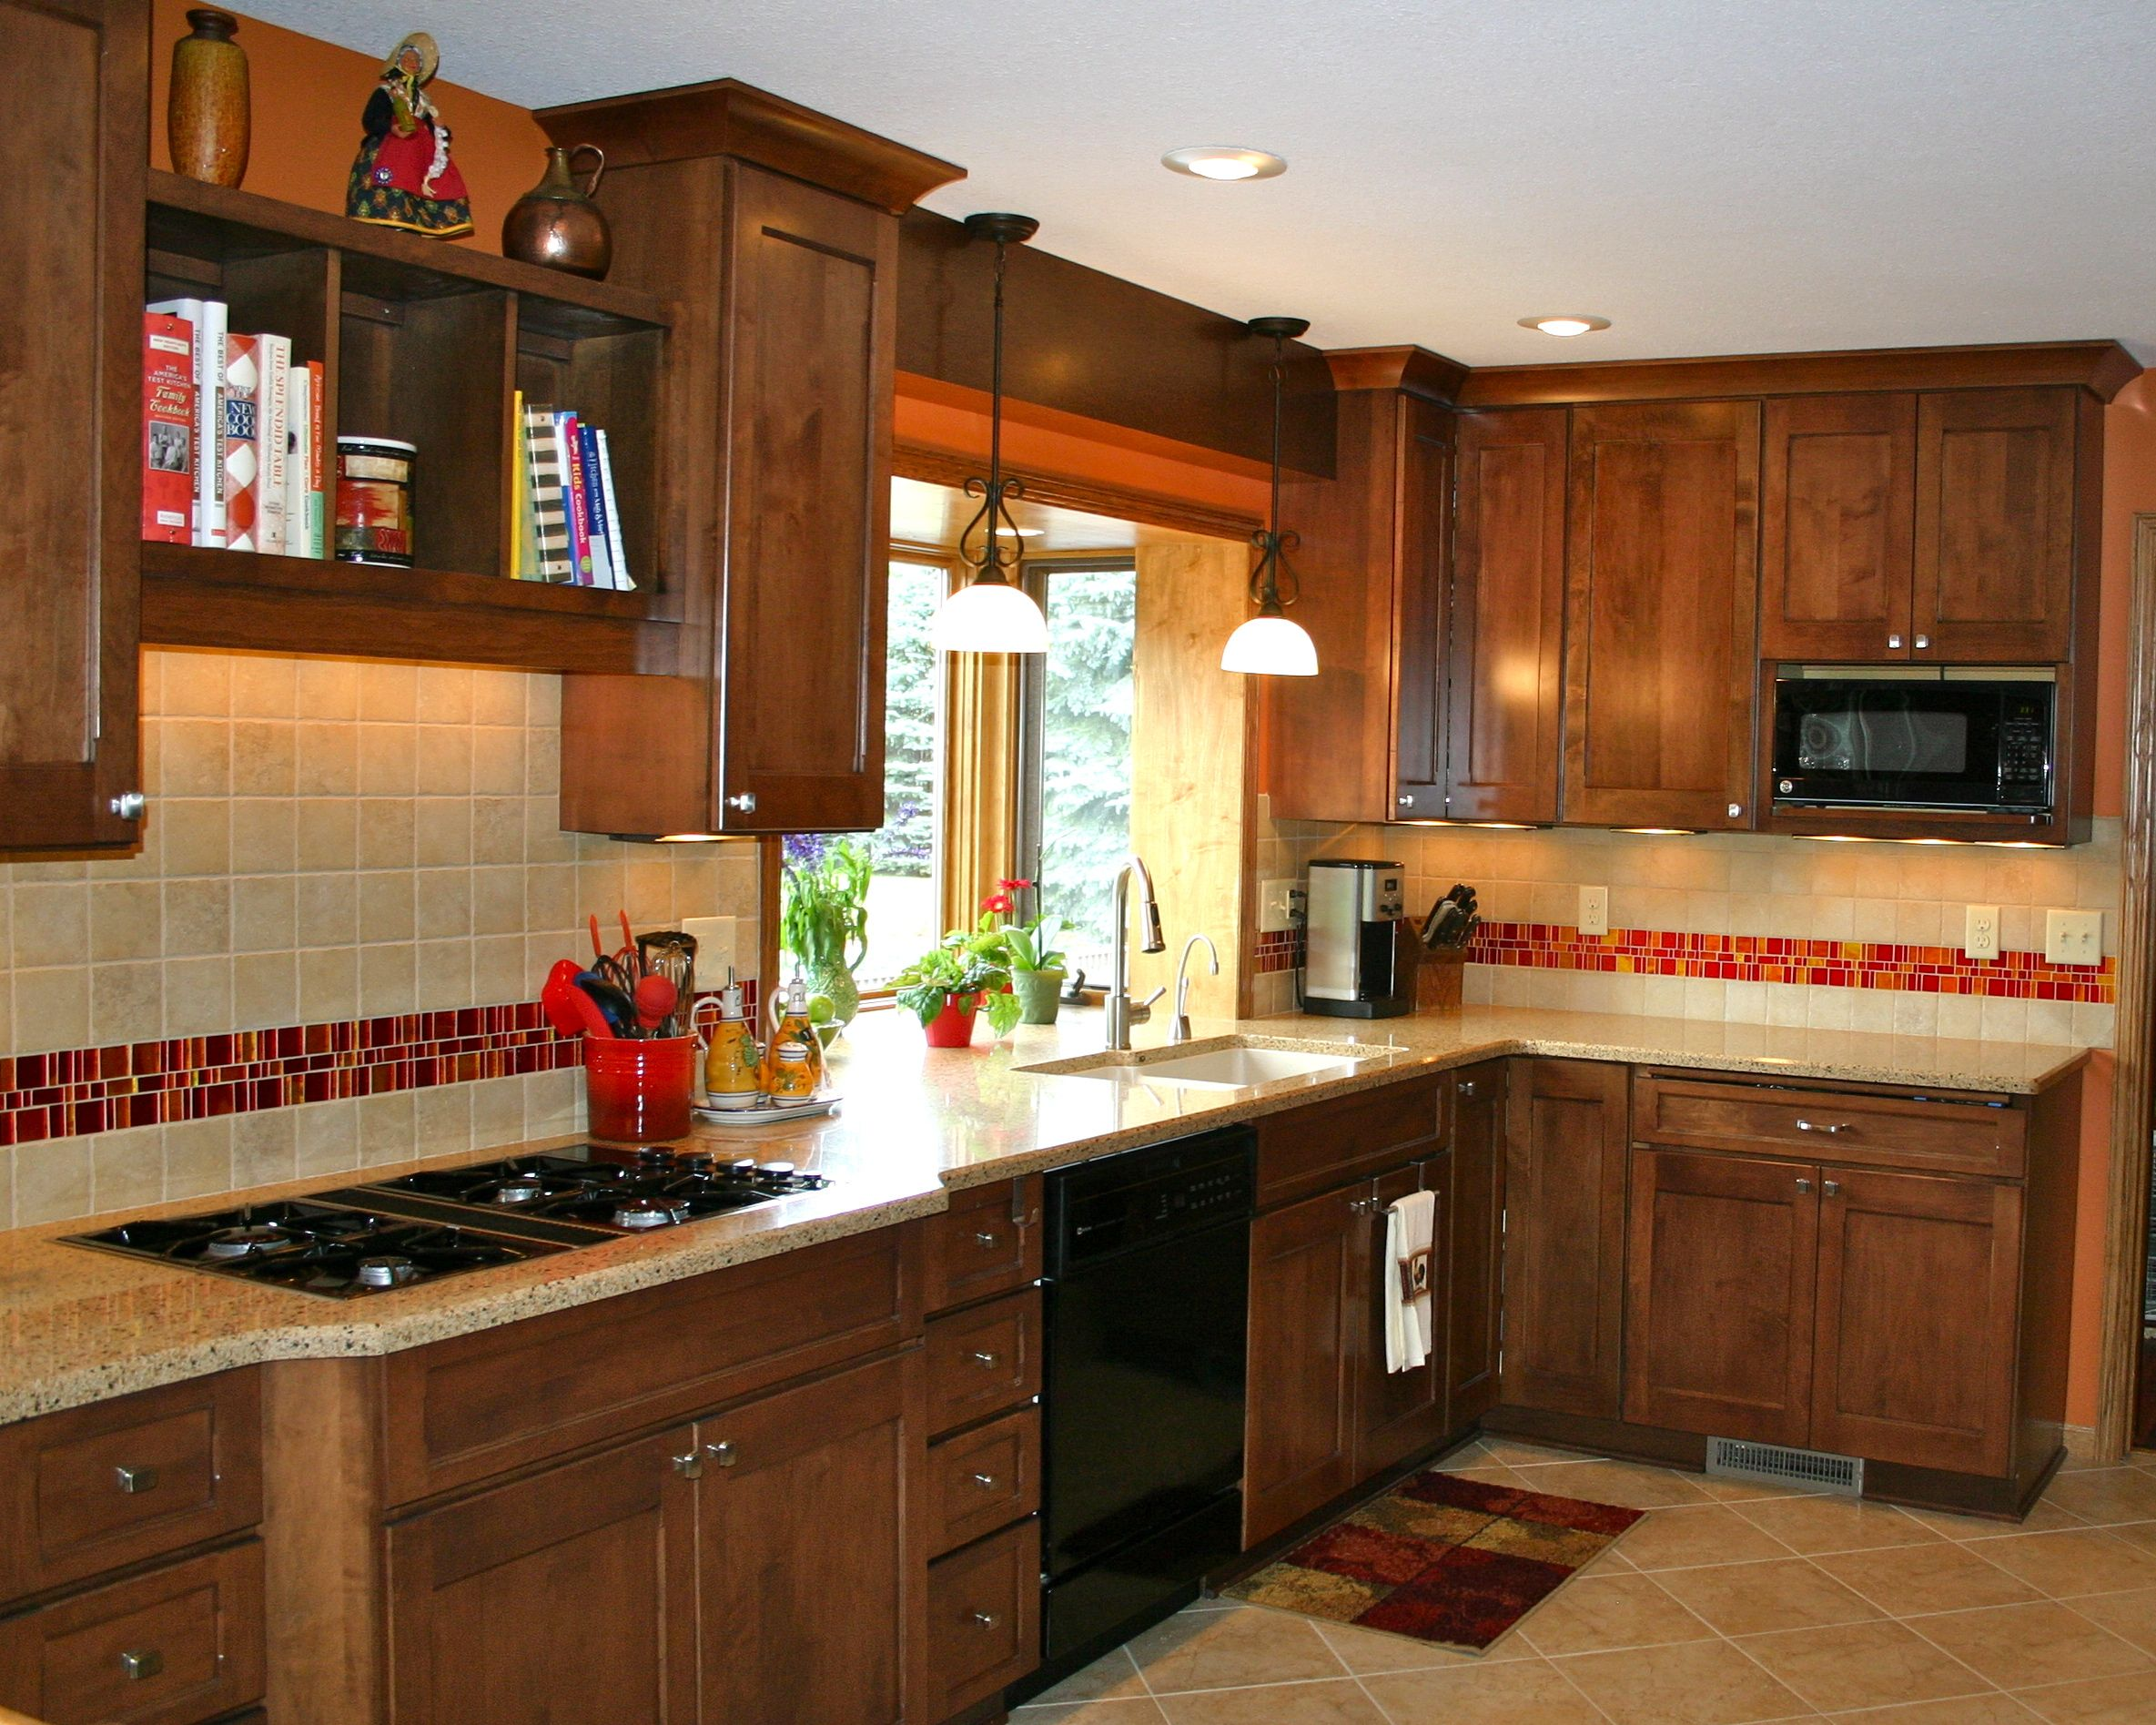 kitchen backsplash accent tile love the red tile backsplash accent in 2019 kitchen tiles kitchen backsplash kitchen 6909